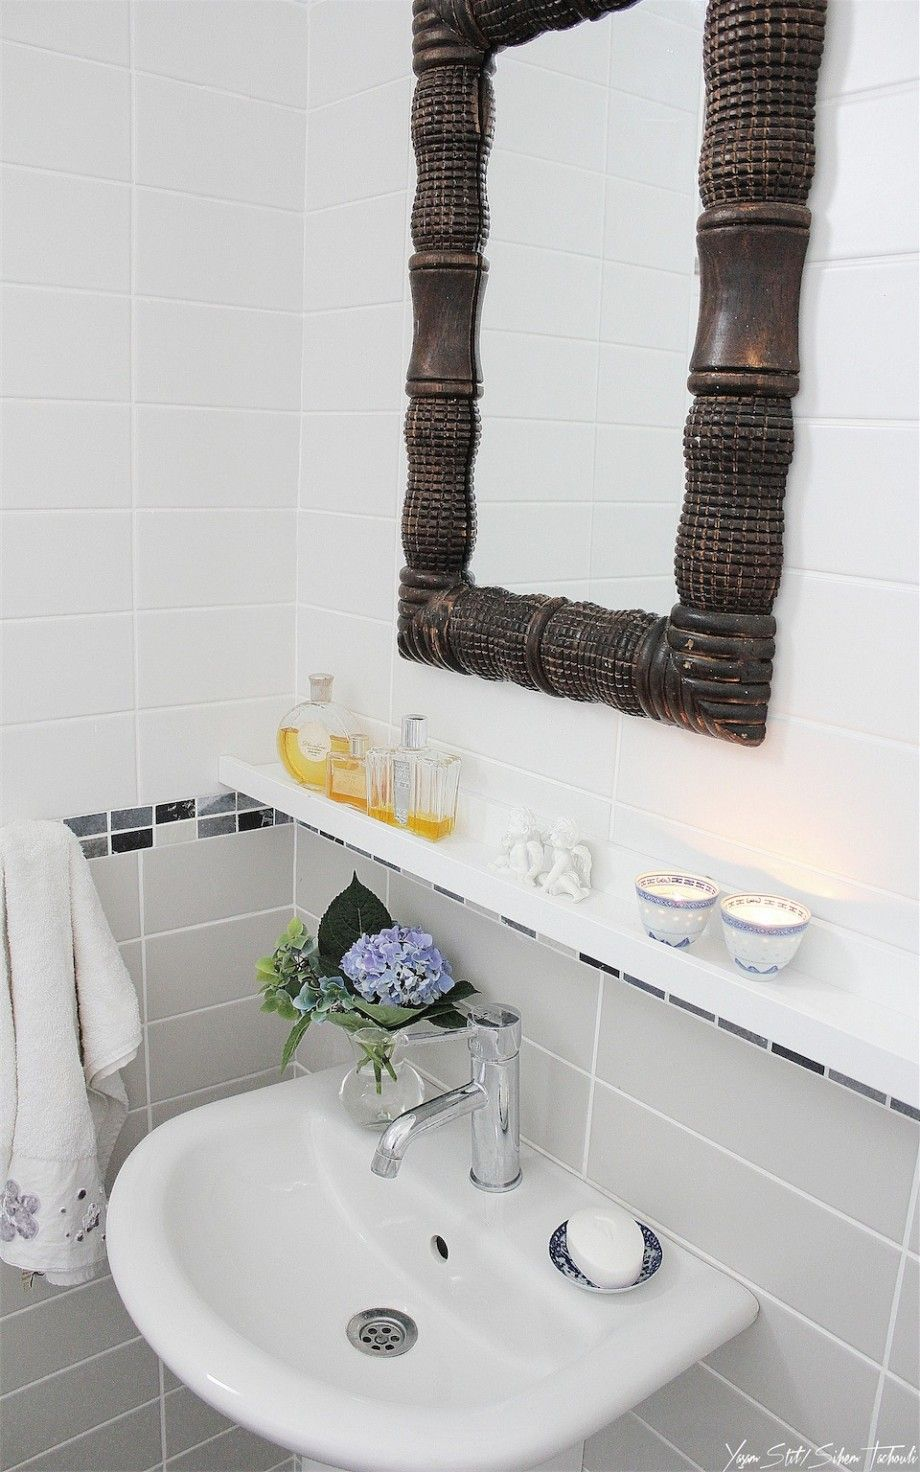 11 IKEA Bathroom Hacks - New Uses for IKEA Items In the Bathroom